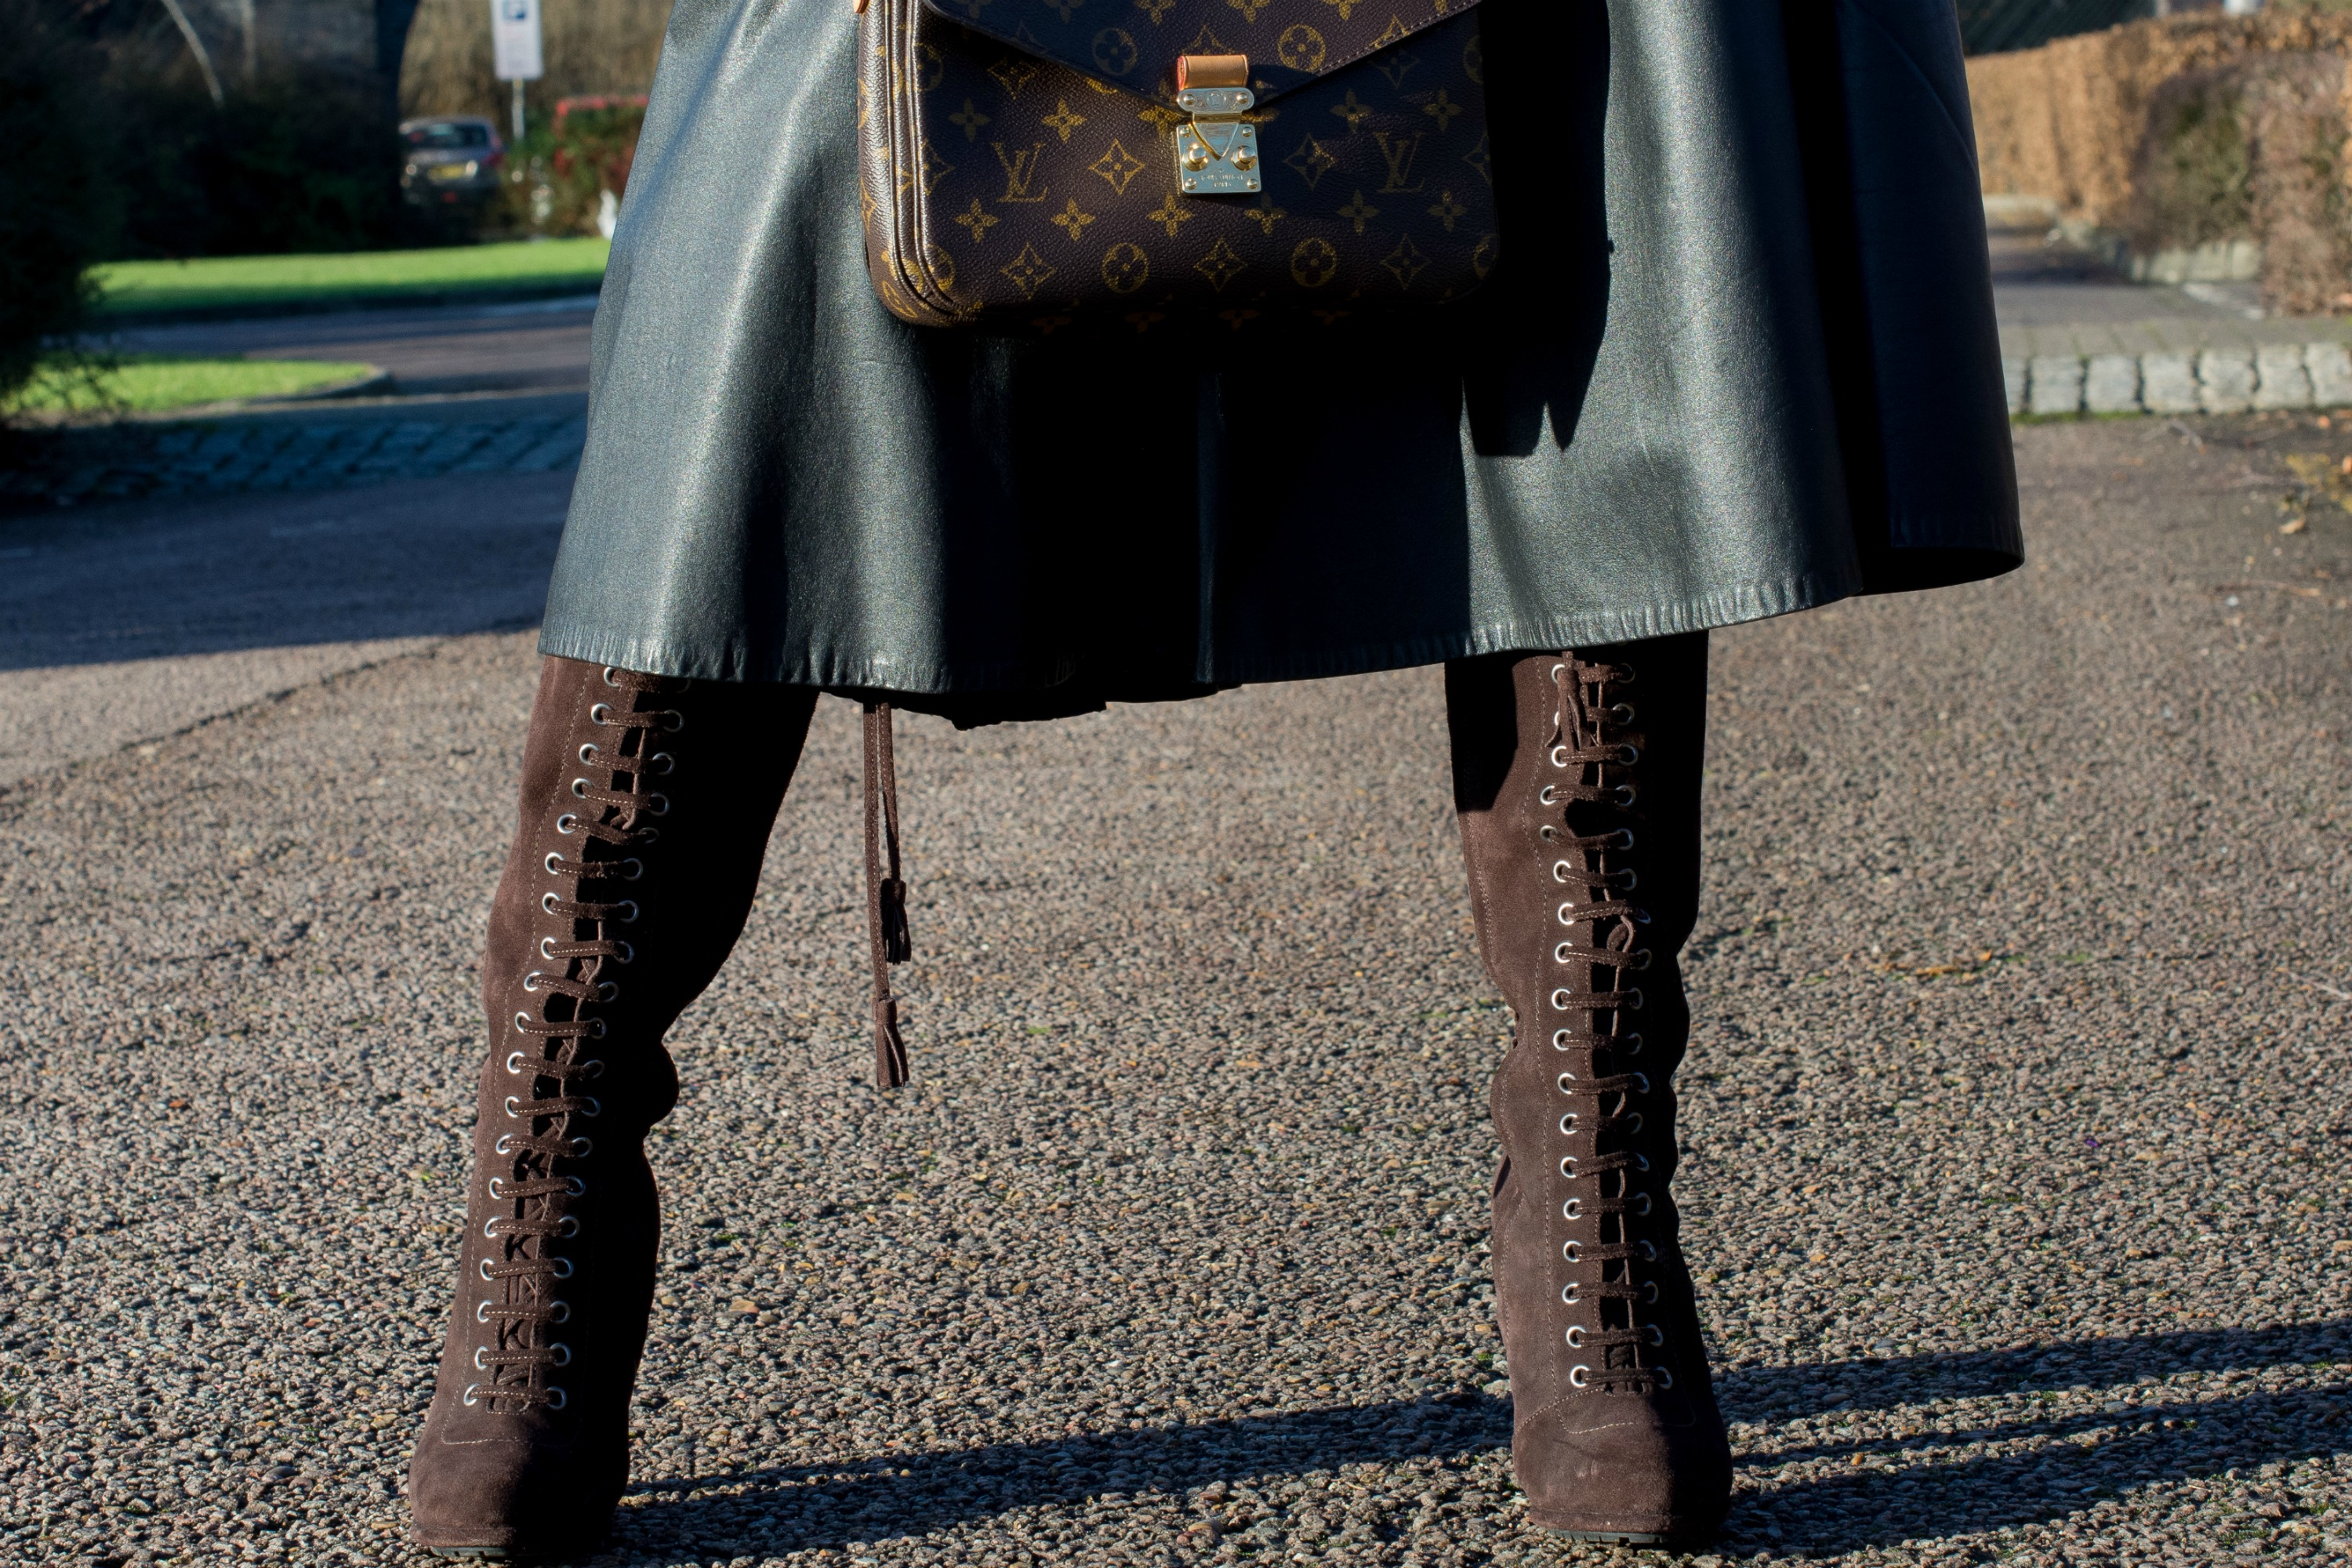 brown-suede-lace-up-boots-black-leather-full-circle-midi-skirt-louis-vuitton-metis